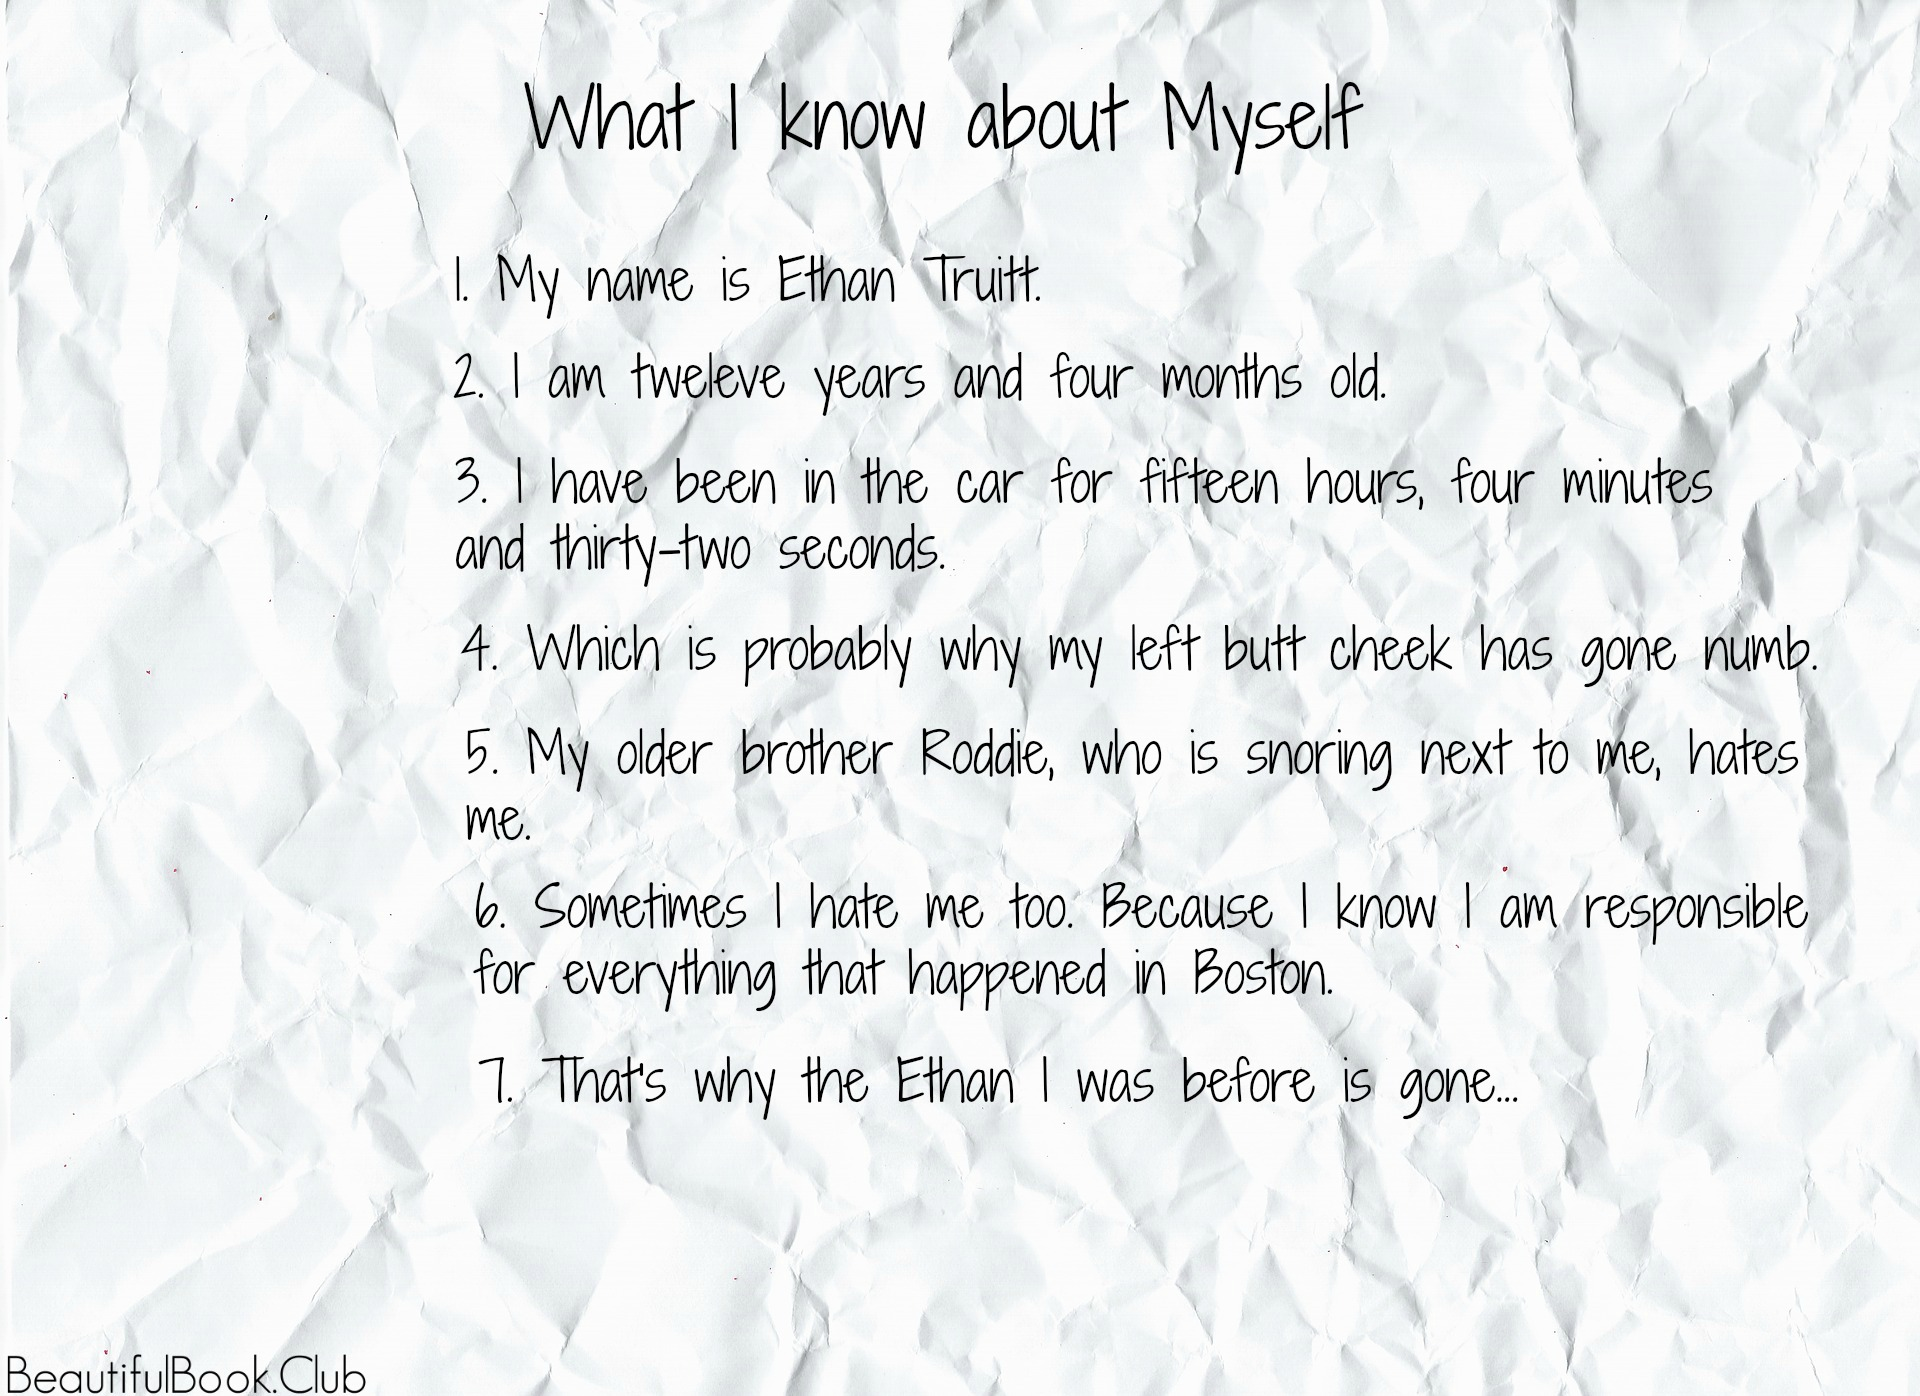 The Ethan I Was Before quote by Ali Standish, What I know about myself